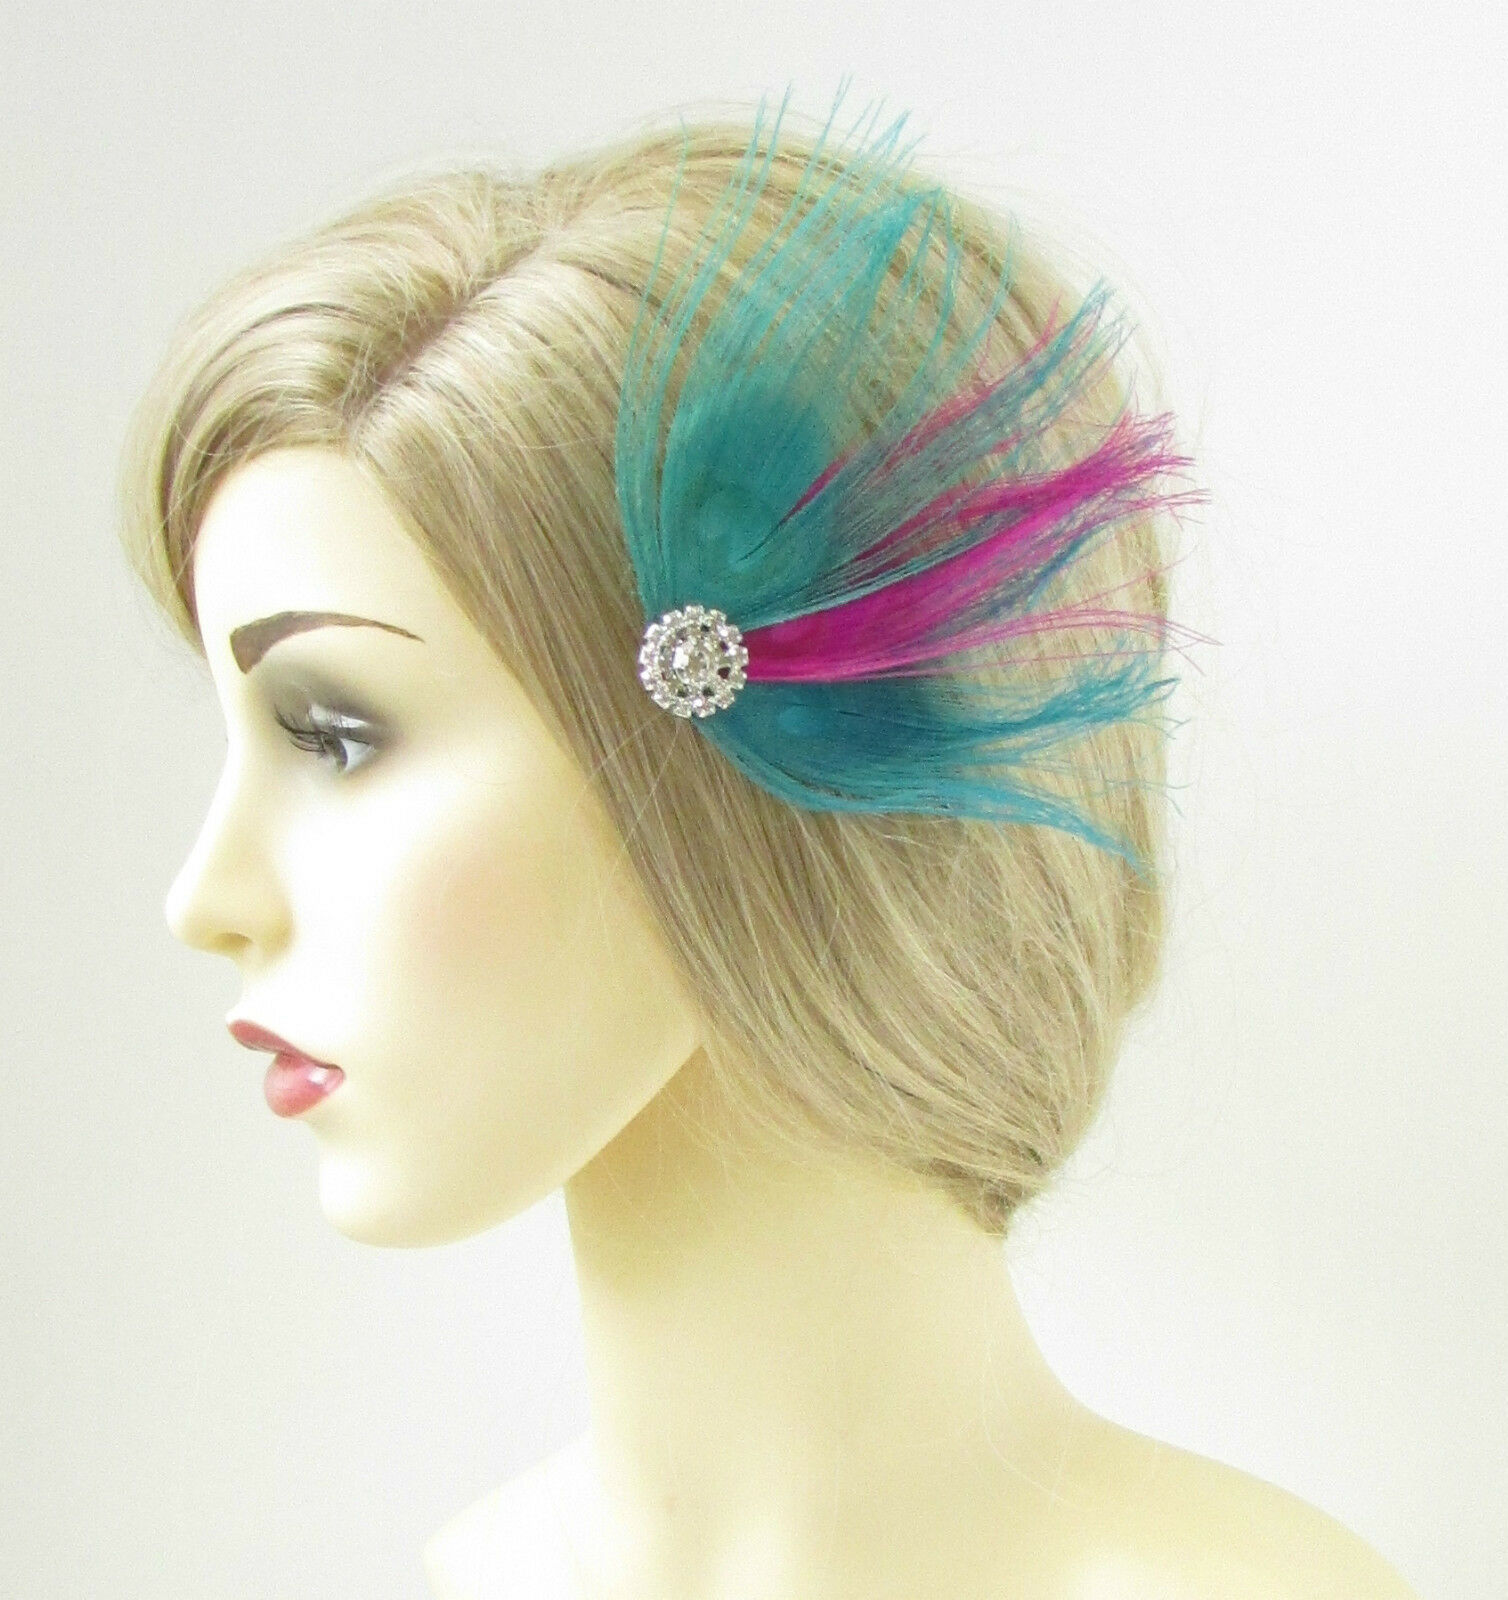 d95ecd8b8e1 Buy Turquoise Blue Hot Pink Peacock Feather Fascinator Hair Clip ...